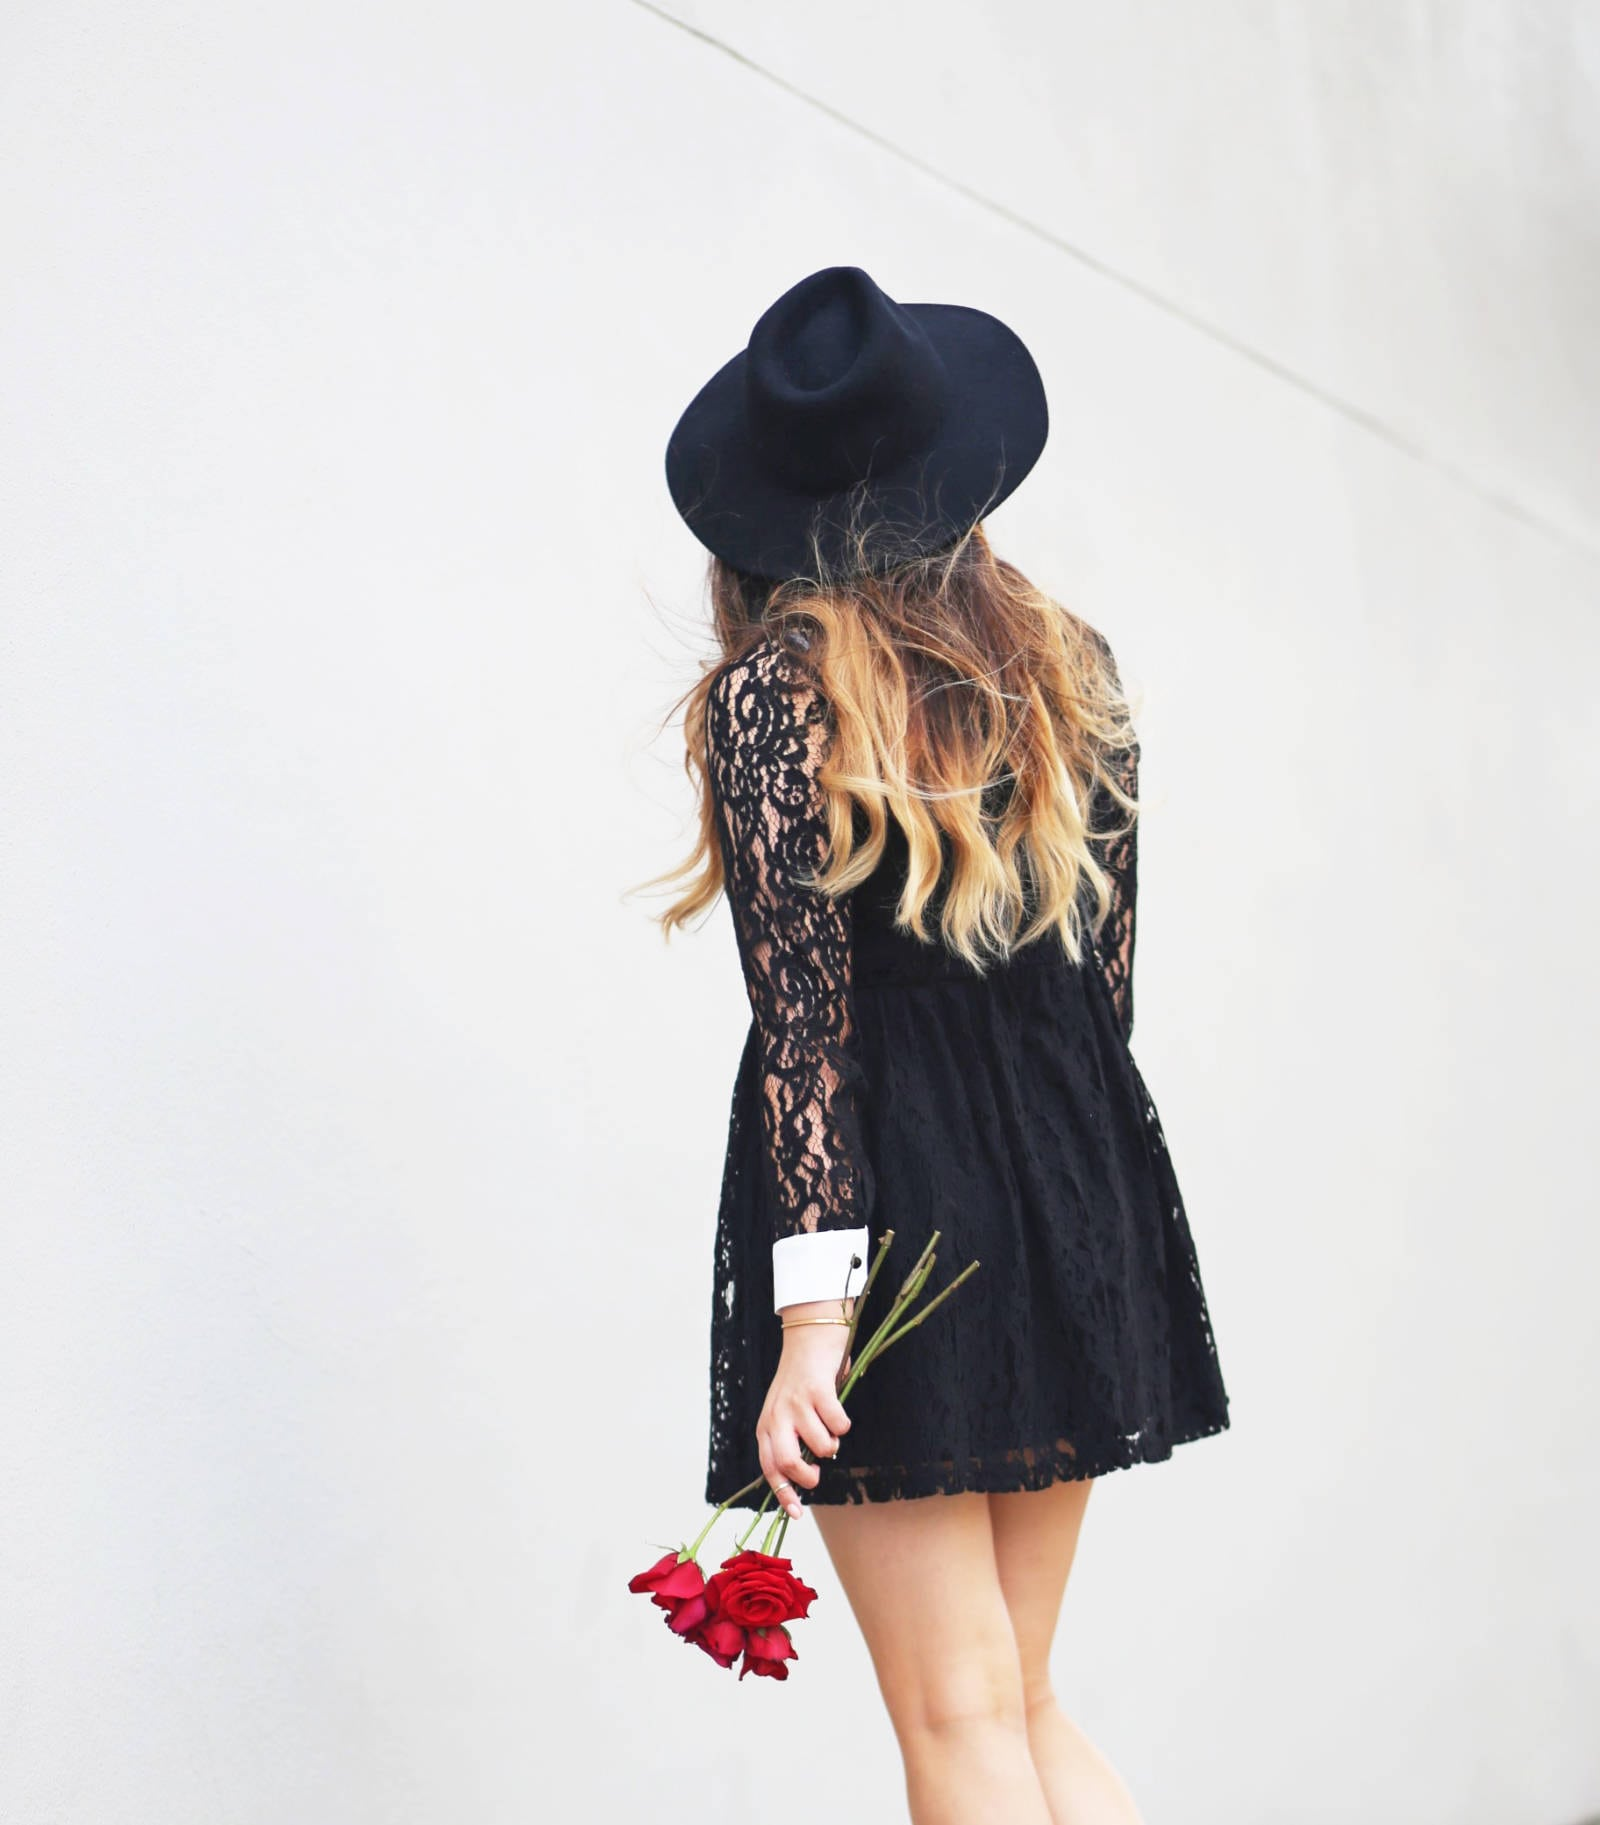 Affordable black lace dress under $50 from Forever 21. Black wide rim hat from Forever 21.